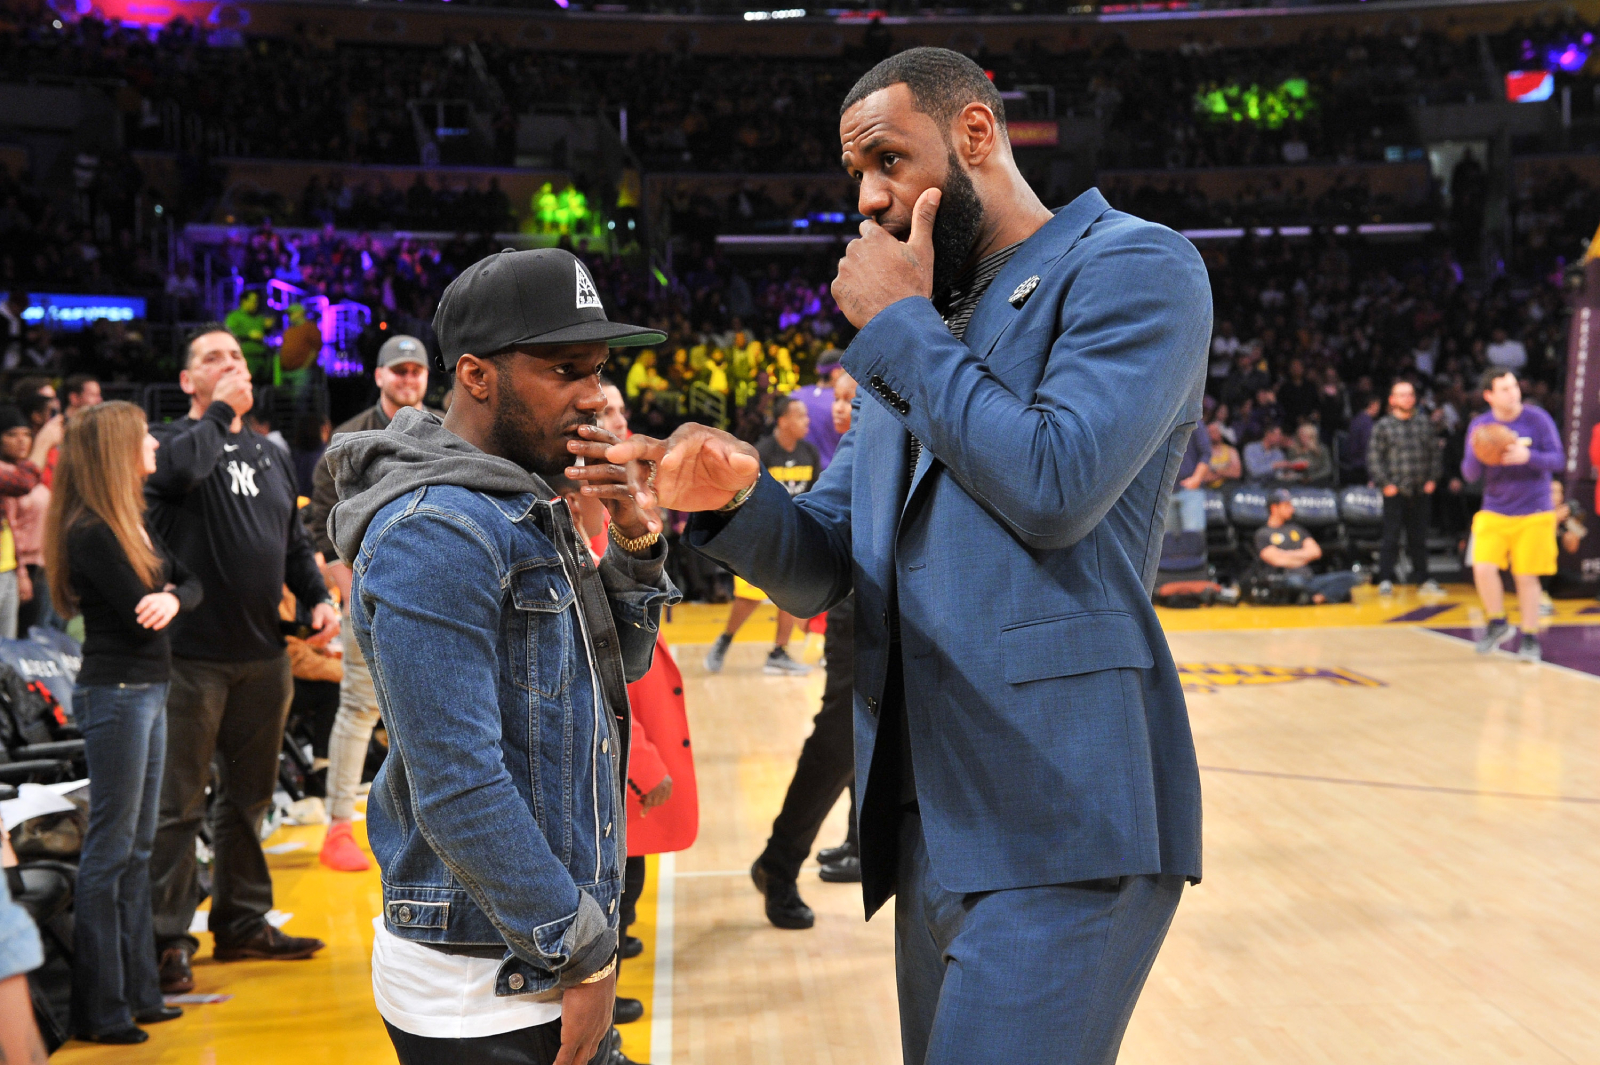 LeBron James and Rich Paul have both become pretty successful. One NBA player agent, though, is not happy with them at all.